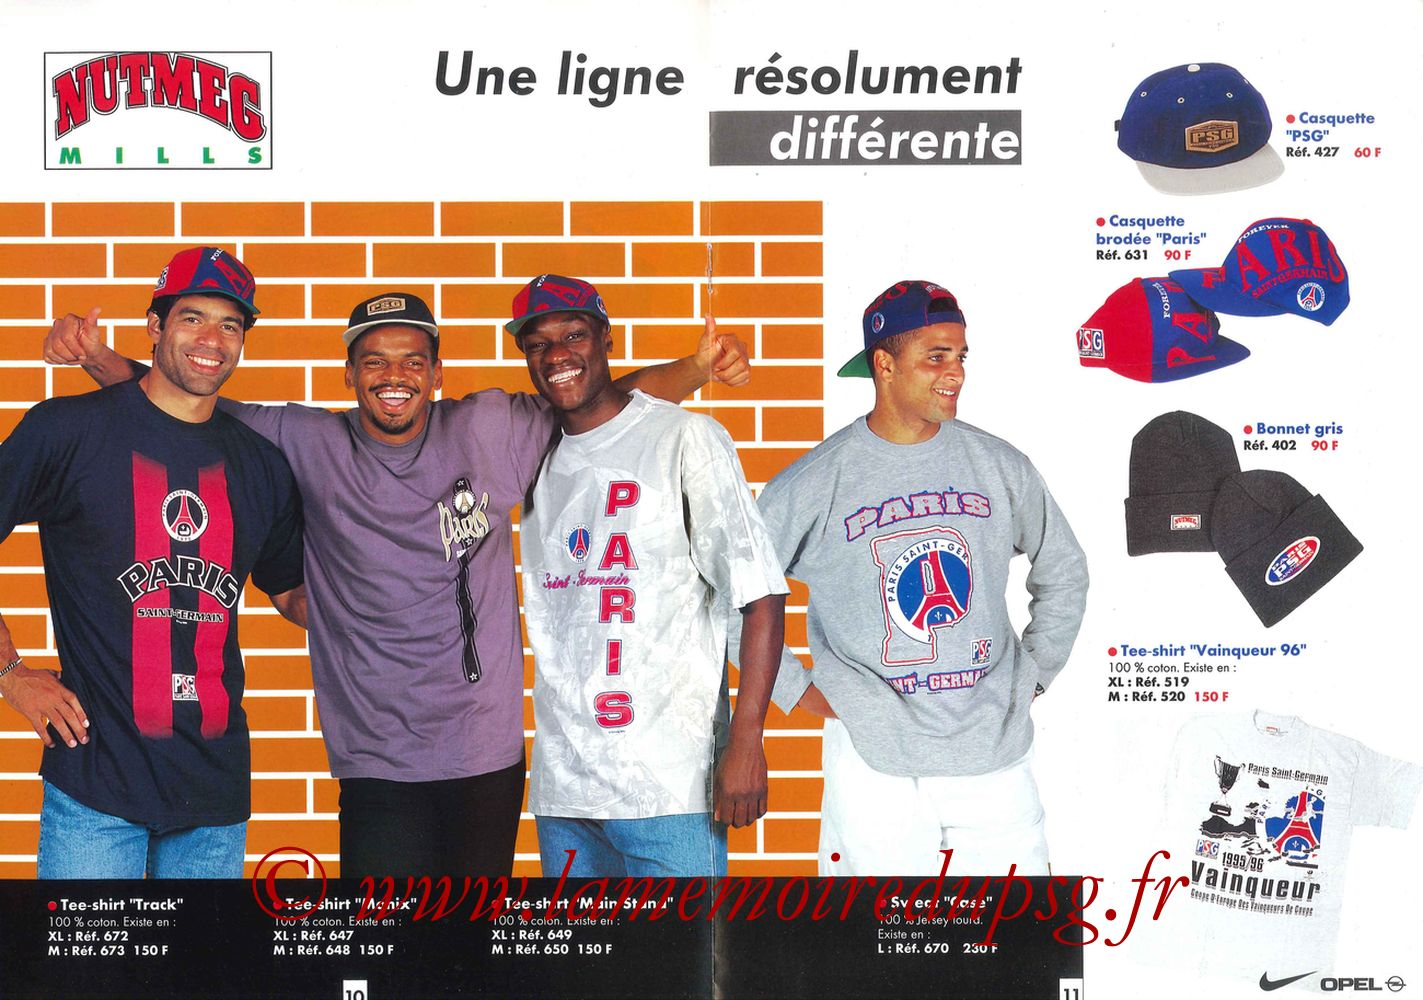 Catalogue PSG - 1996-97 - Pages 10 et 11